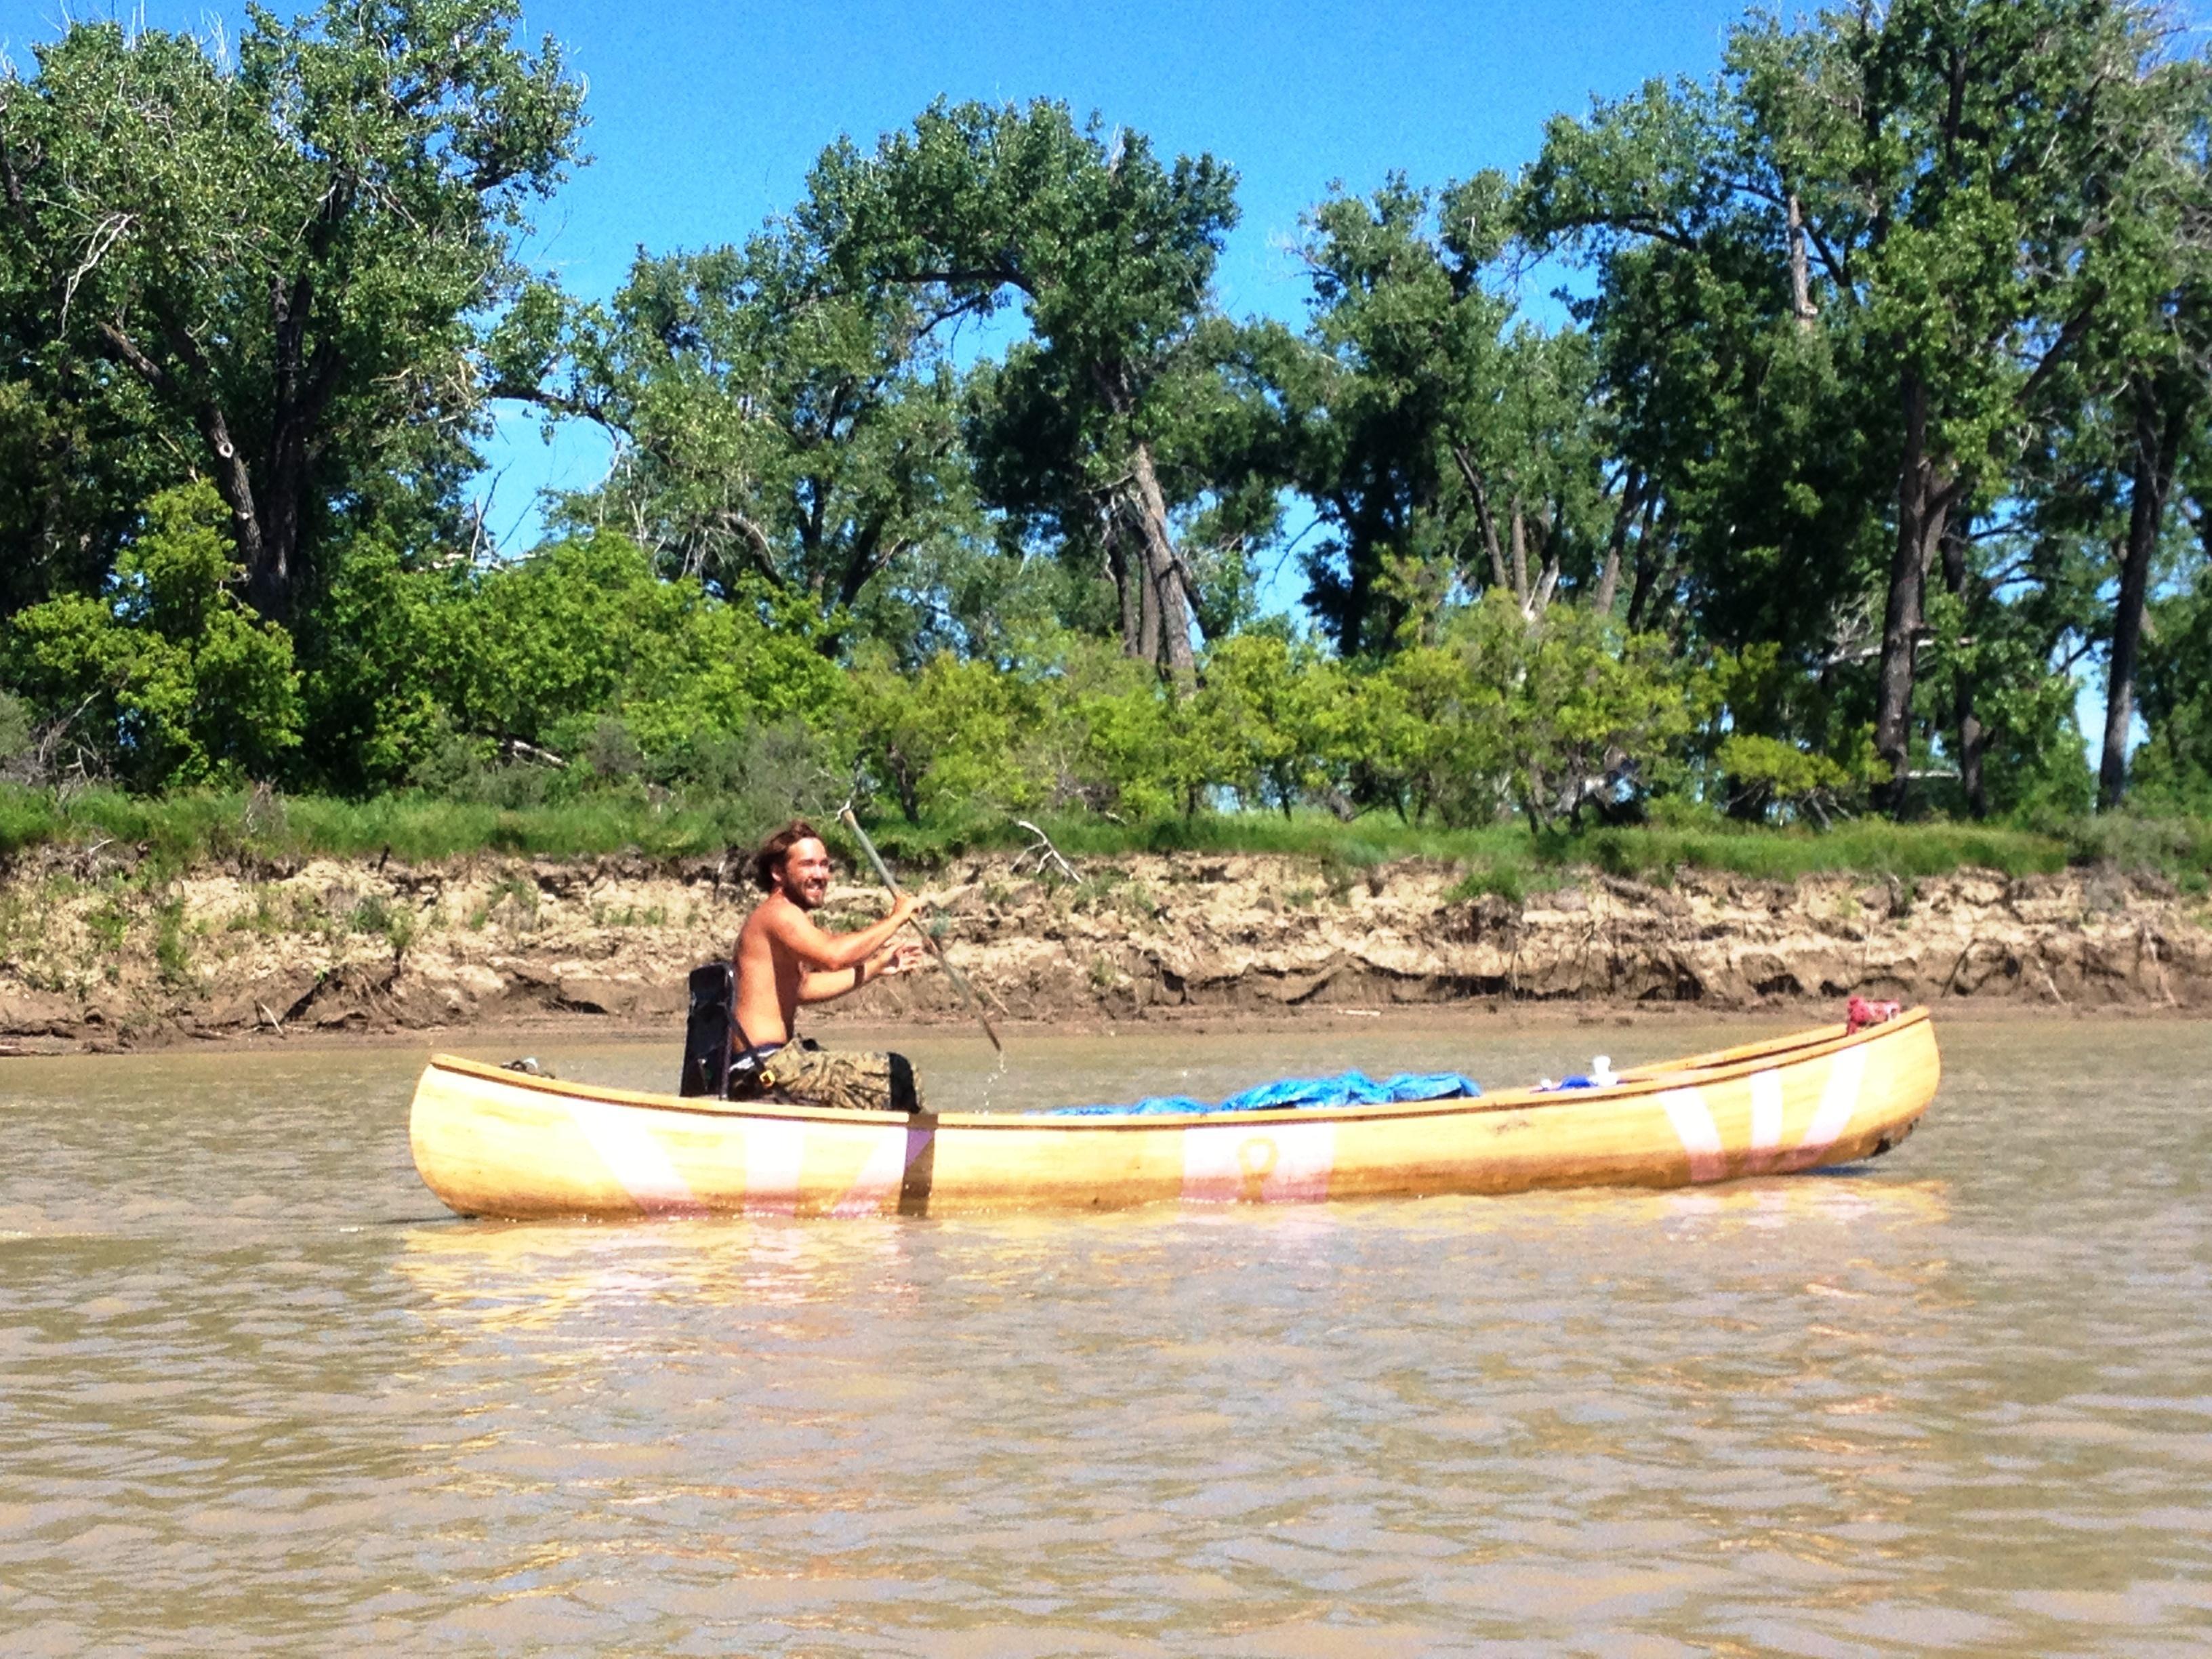 Shawn Hollingsworth in his self-made canoe. Shawn was raising awareness for breast cancer.